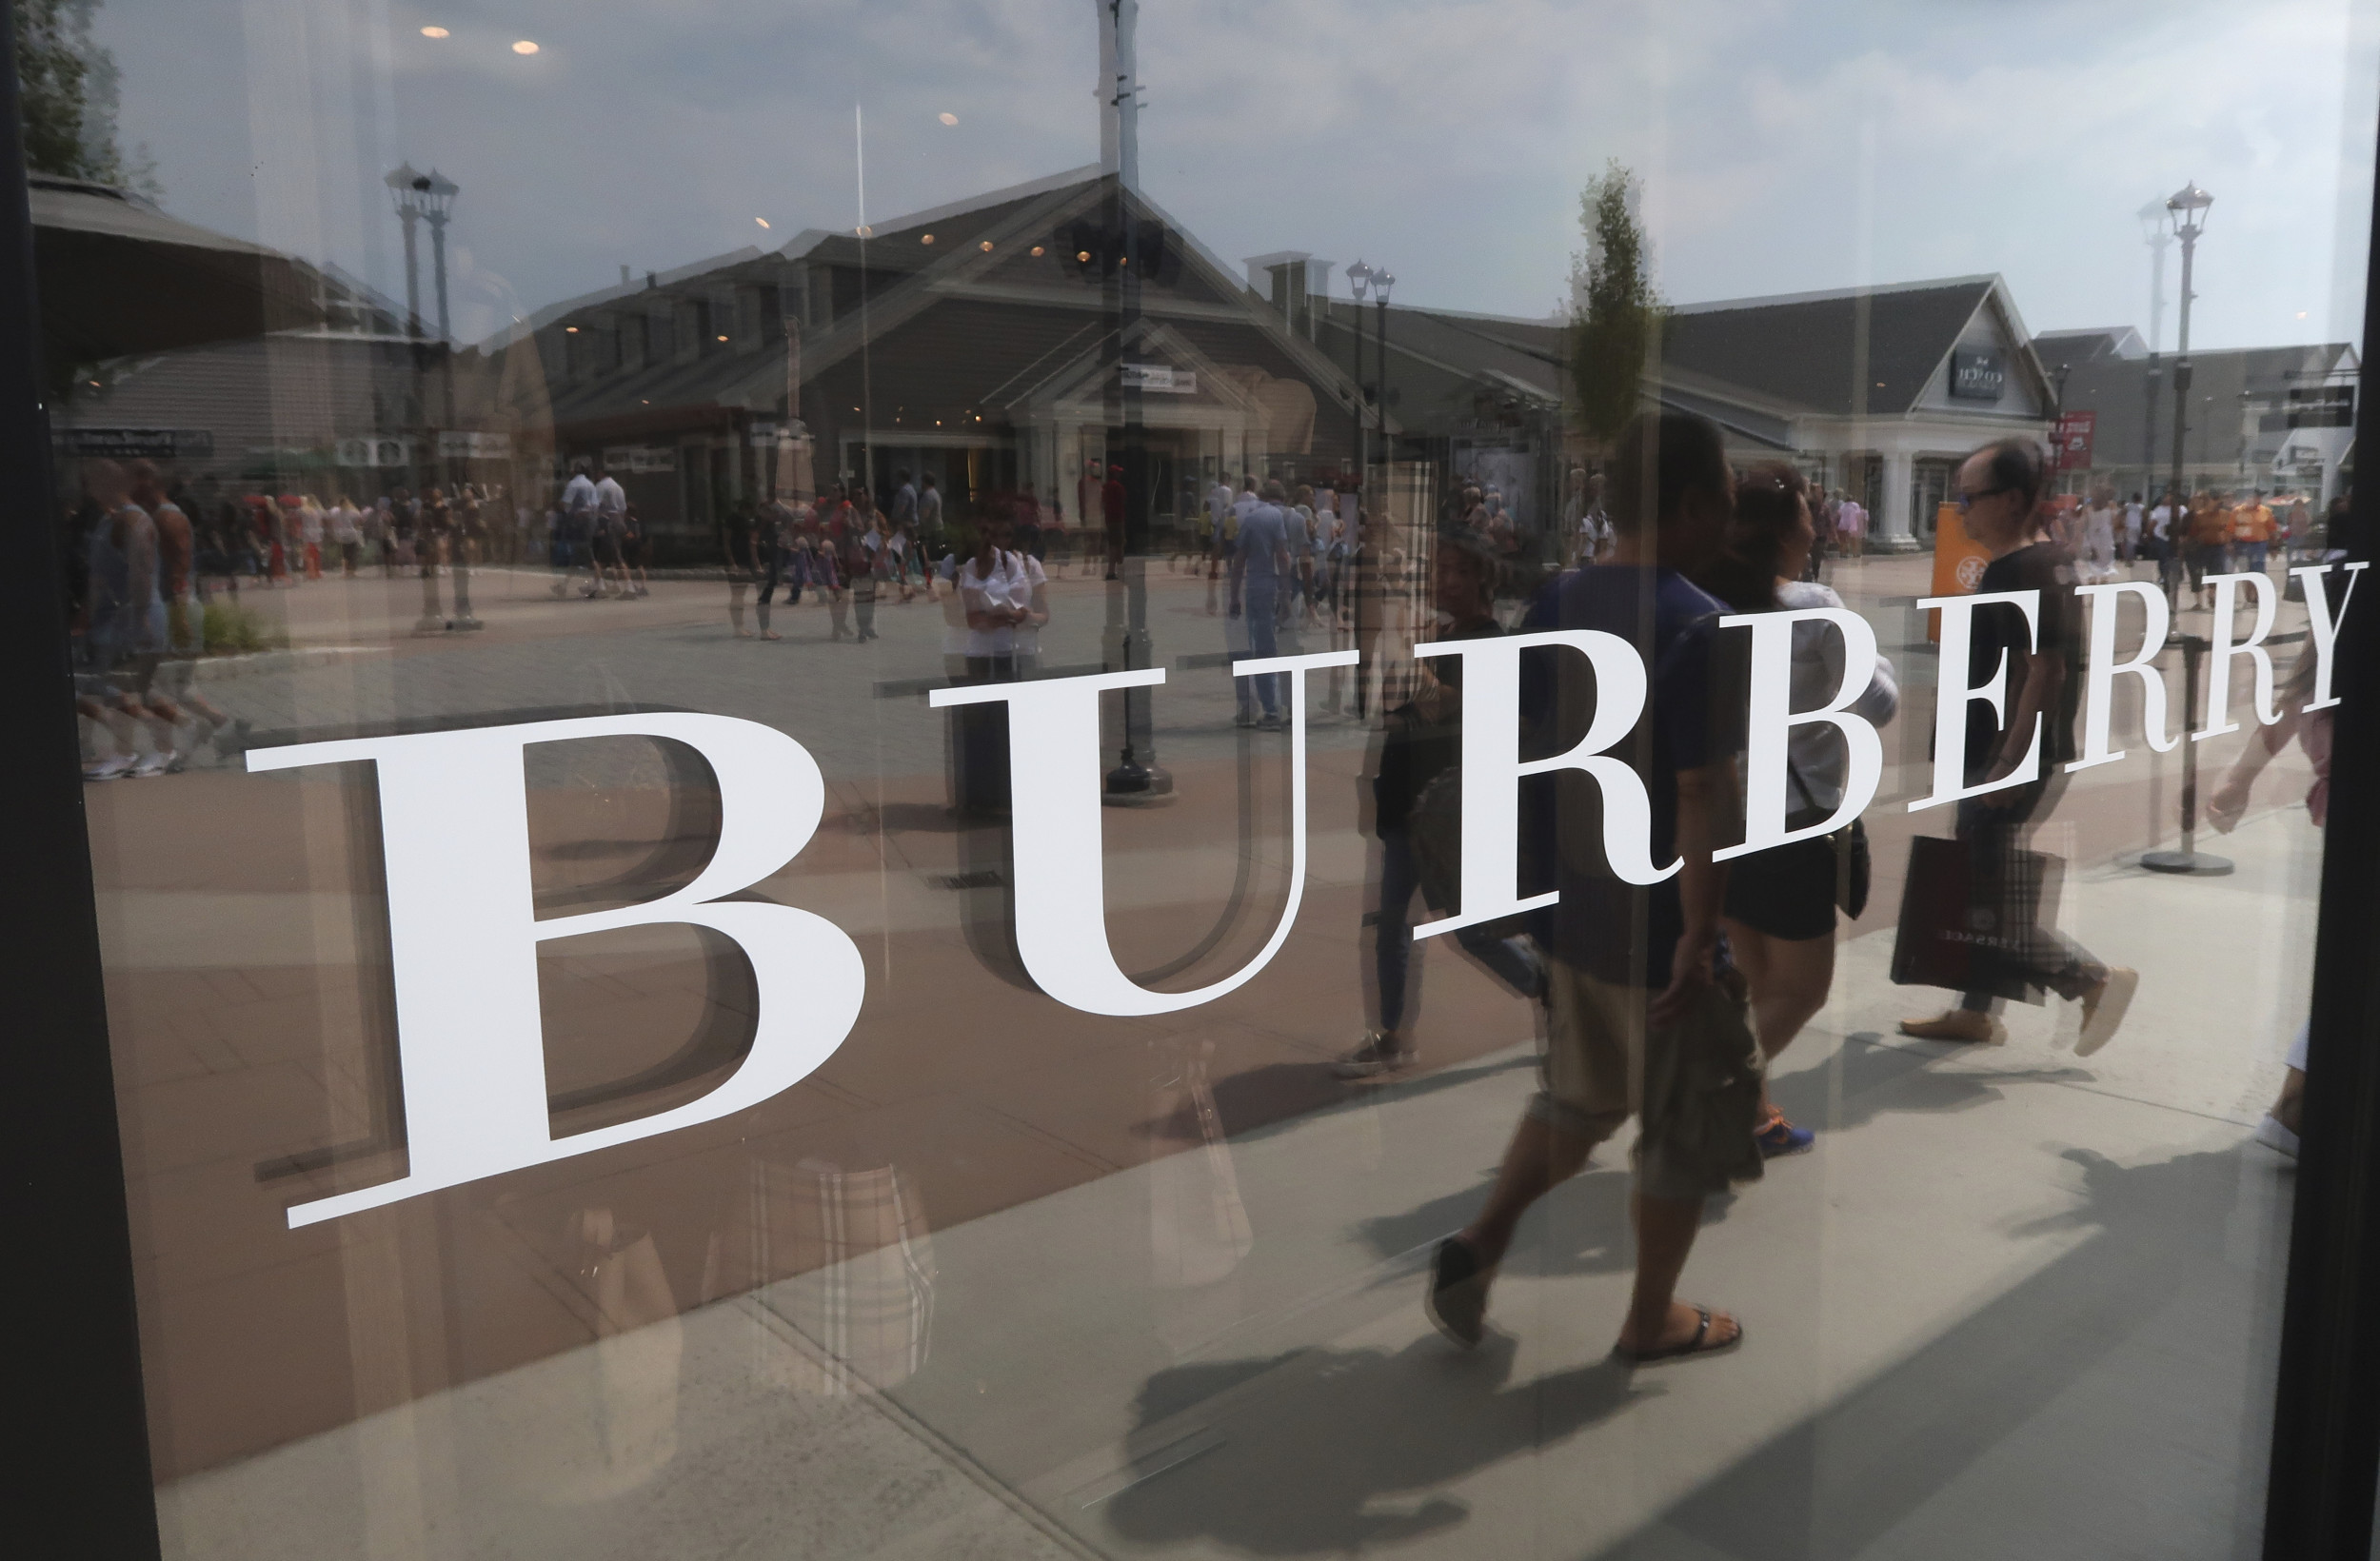 Burberry US Cyber Monday - Burberry US Cyber Monday 2020